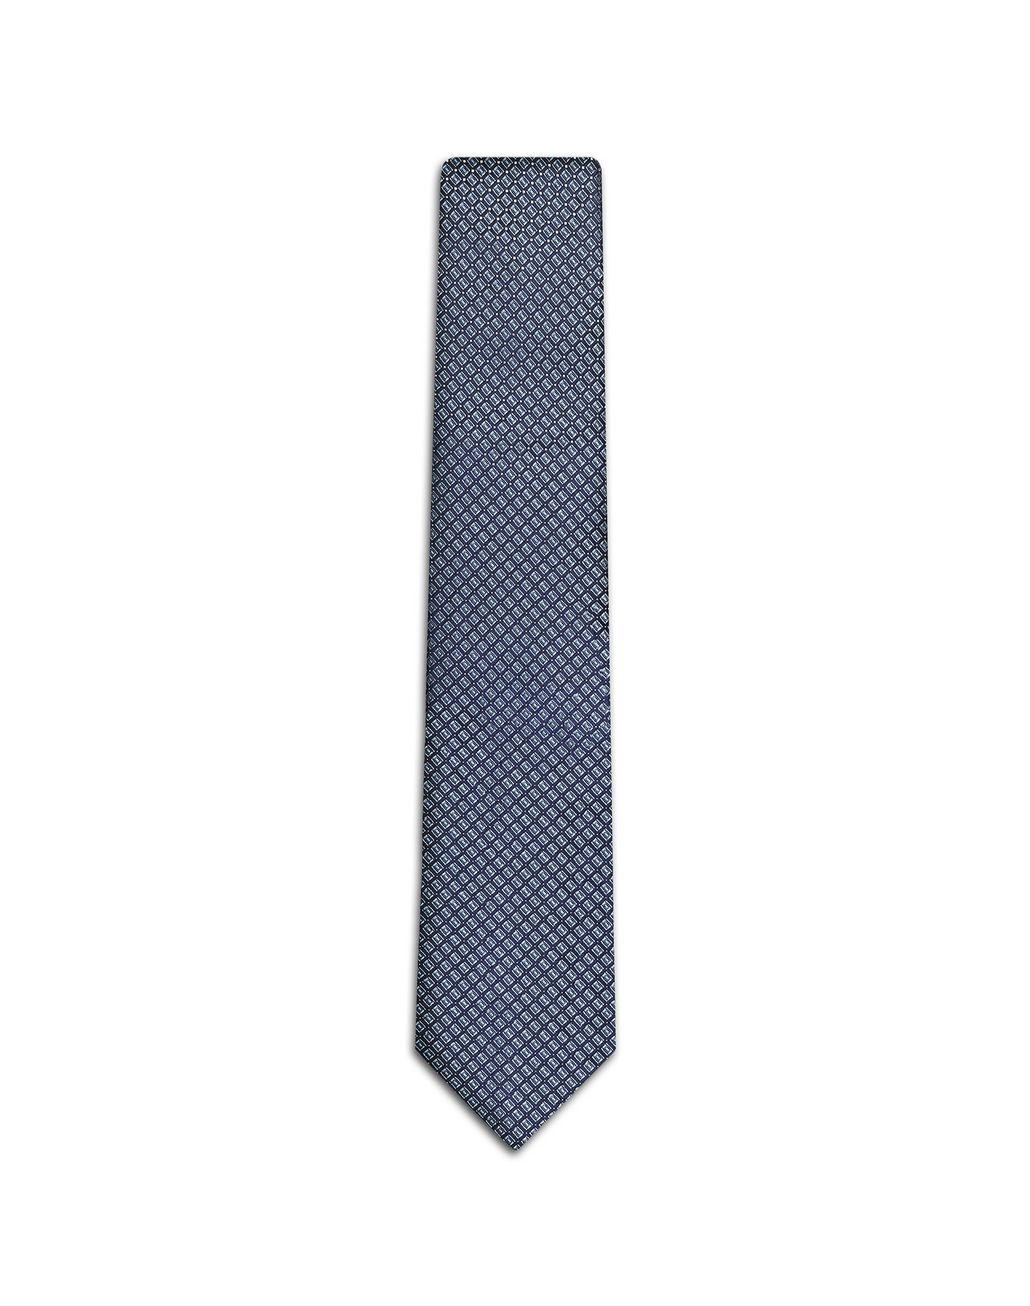 BRIONI Navy-Blue and Bluette Designed Tie Tie Man f